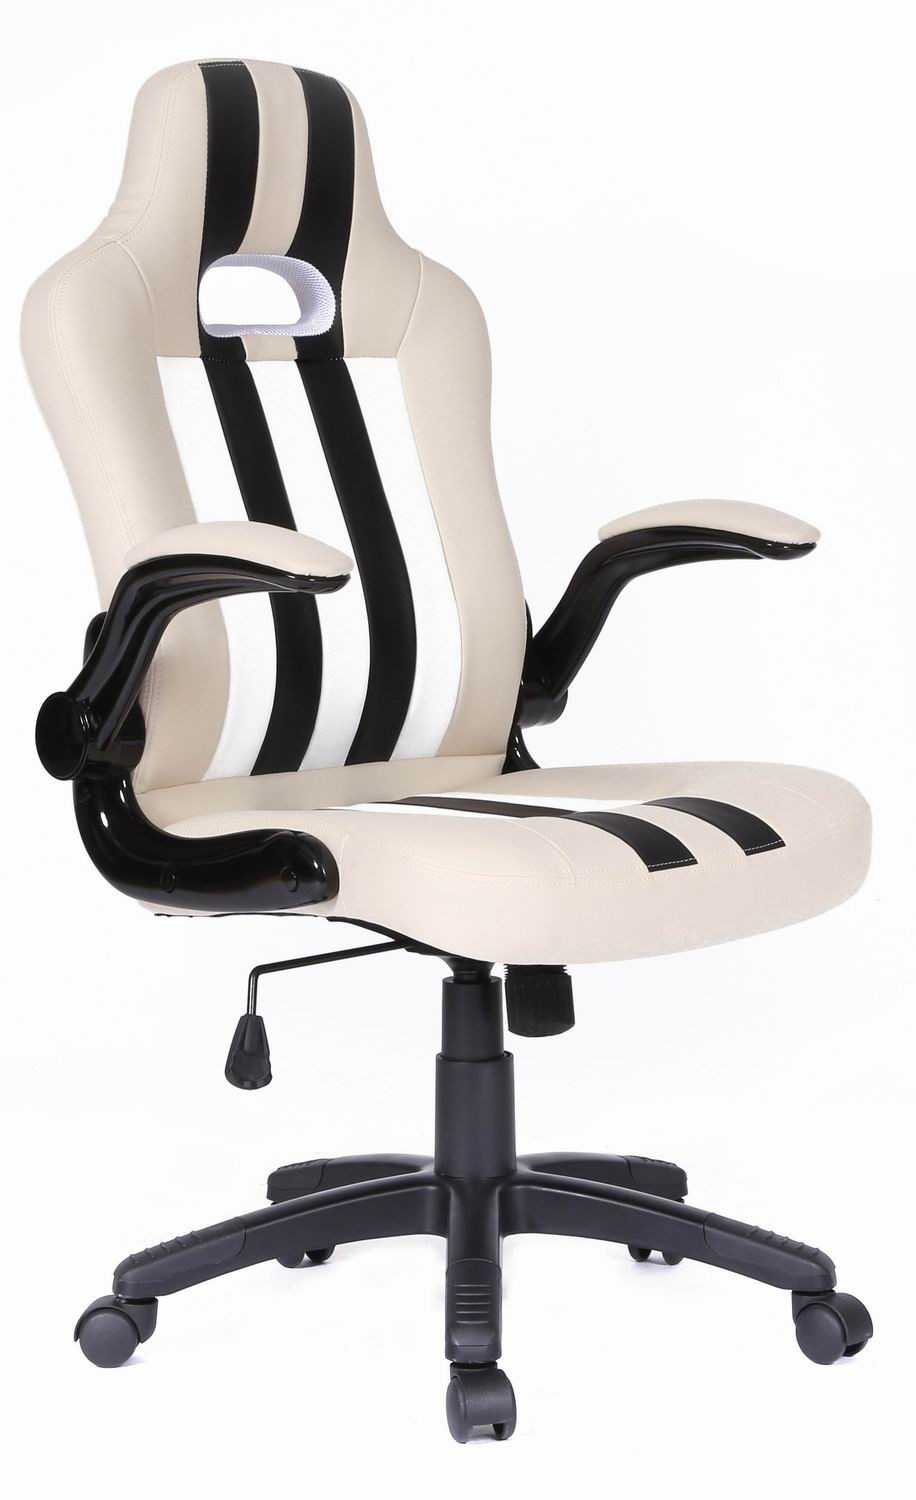 Office Armchair FANGIO, Gas, Tilt, Similpiel Combined And Mesh